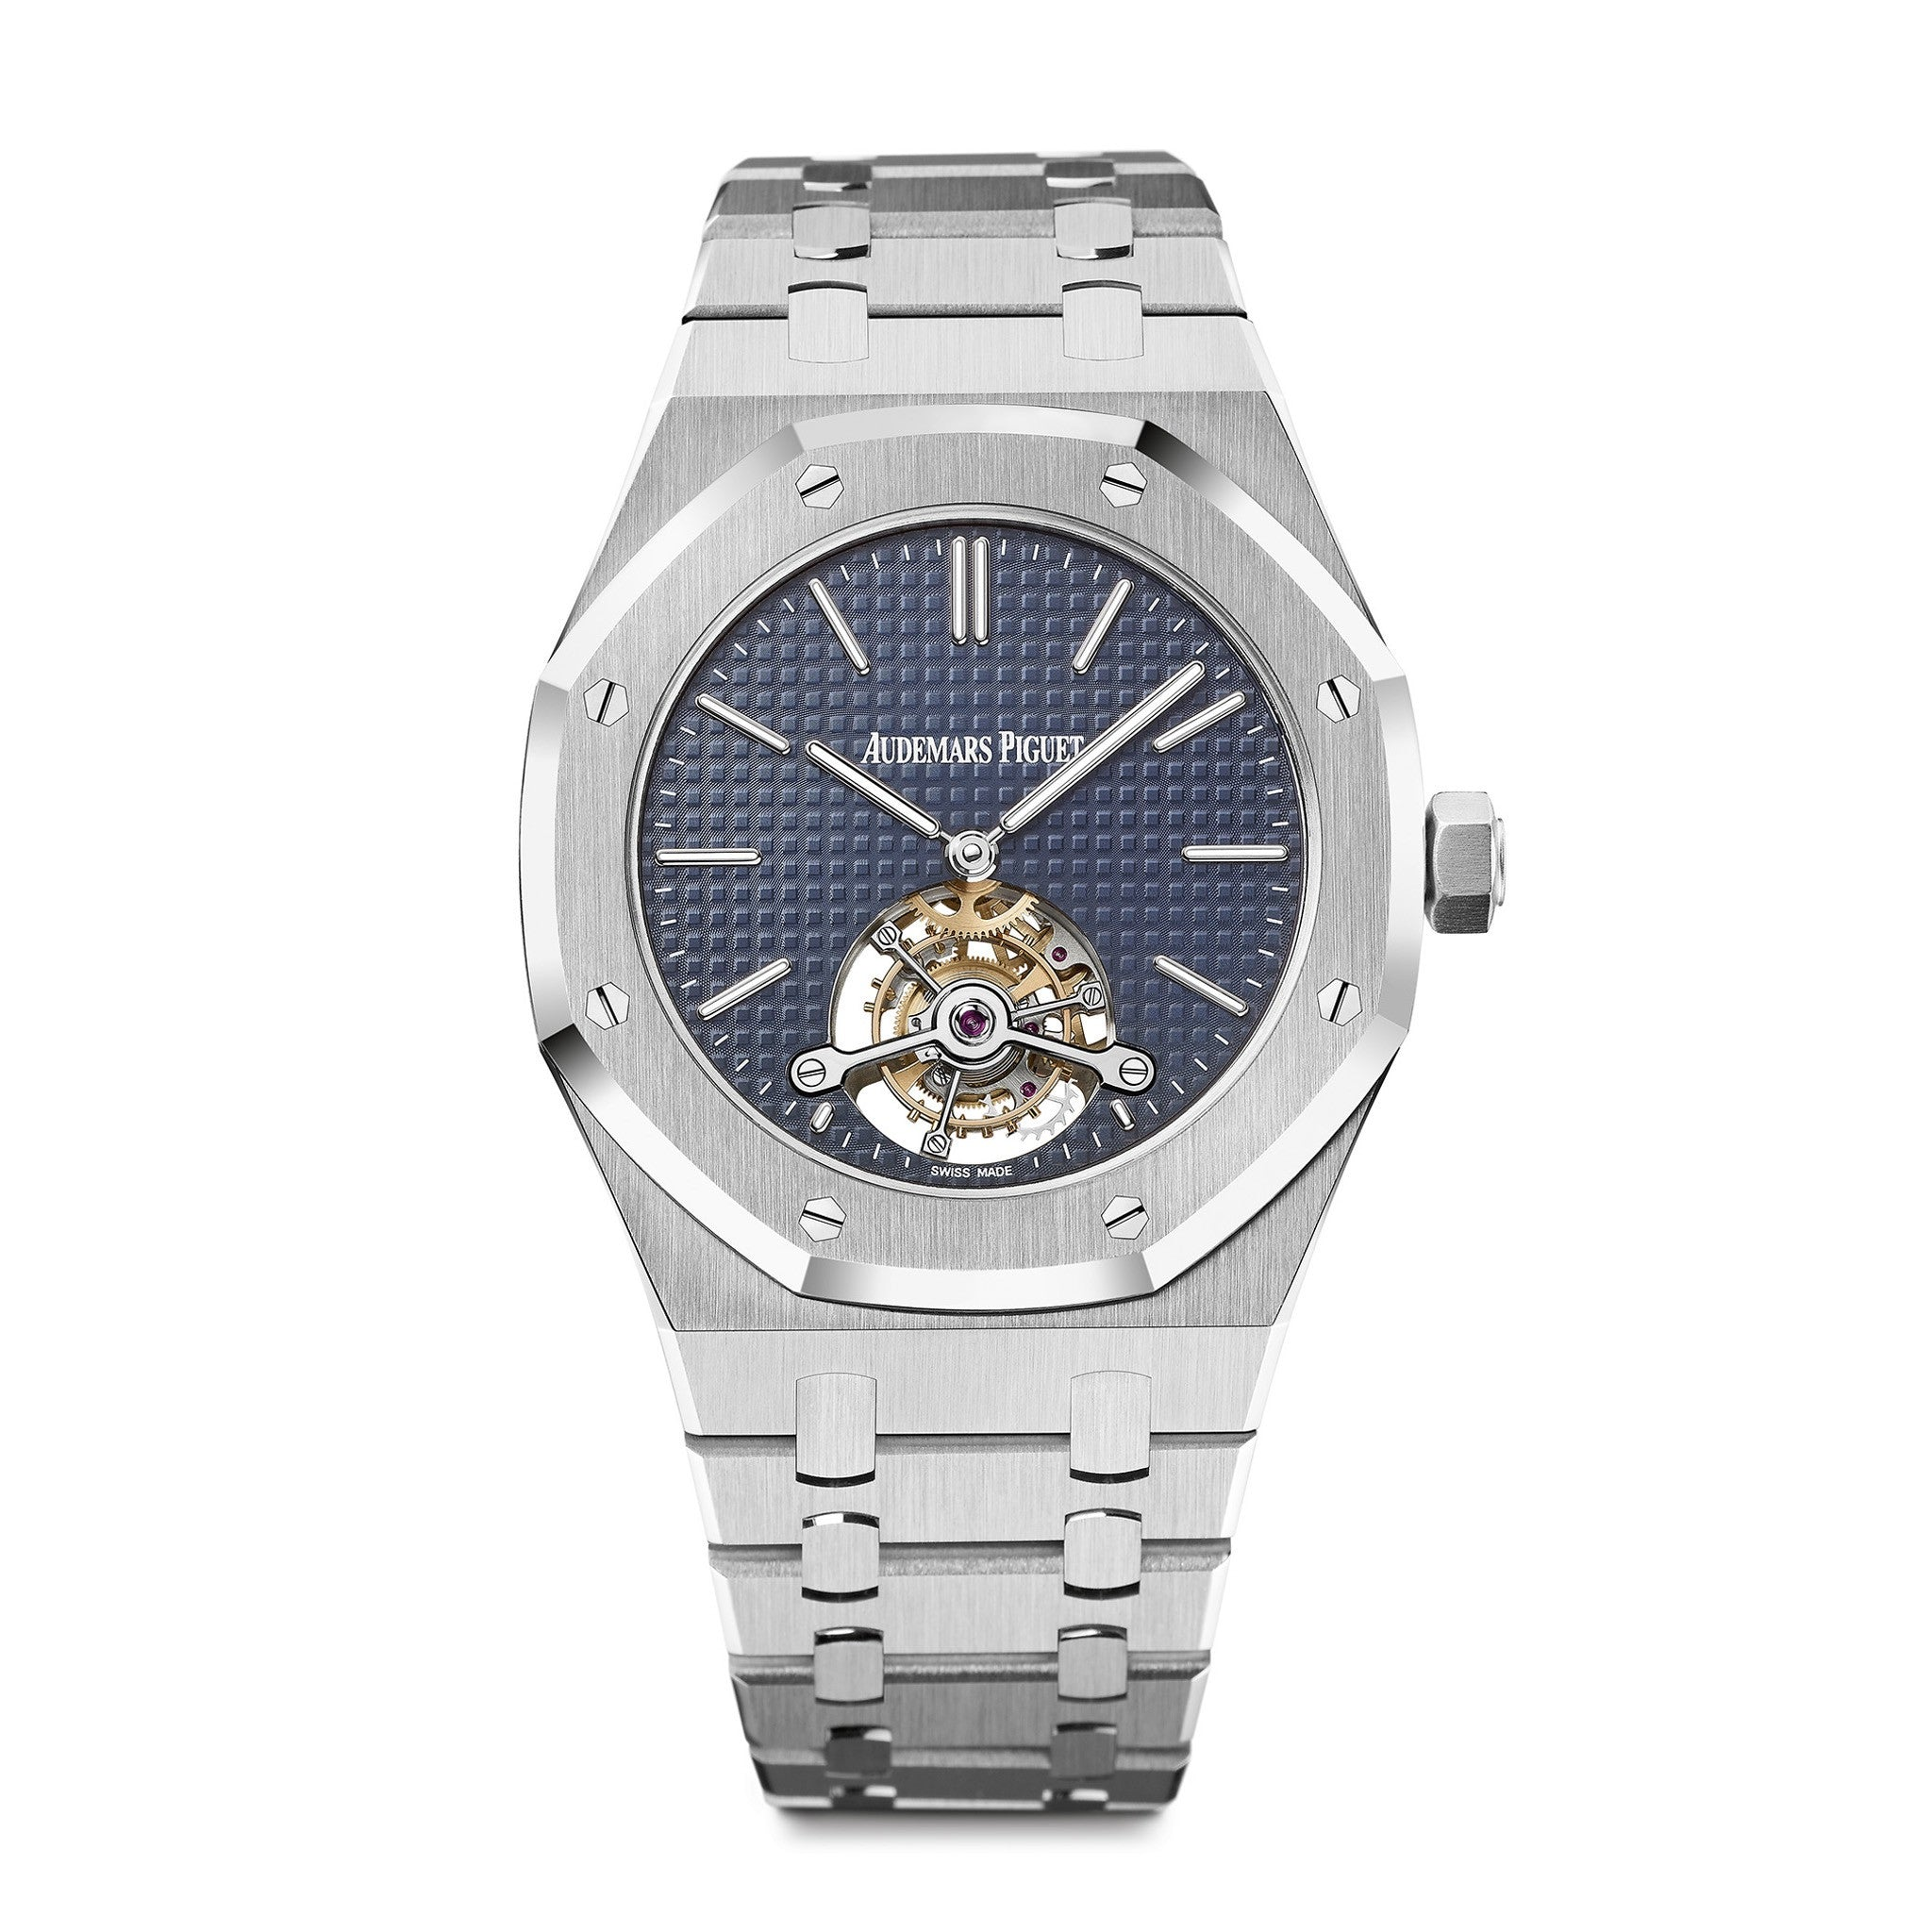 Royal Oak Extra-Thin Tourbillon 26510ST.OO.1220ST.01 - Audemars Piguet